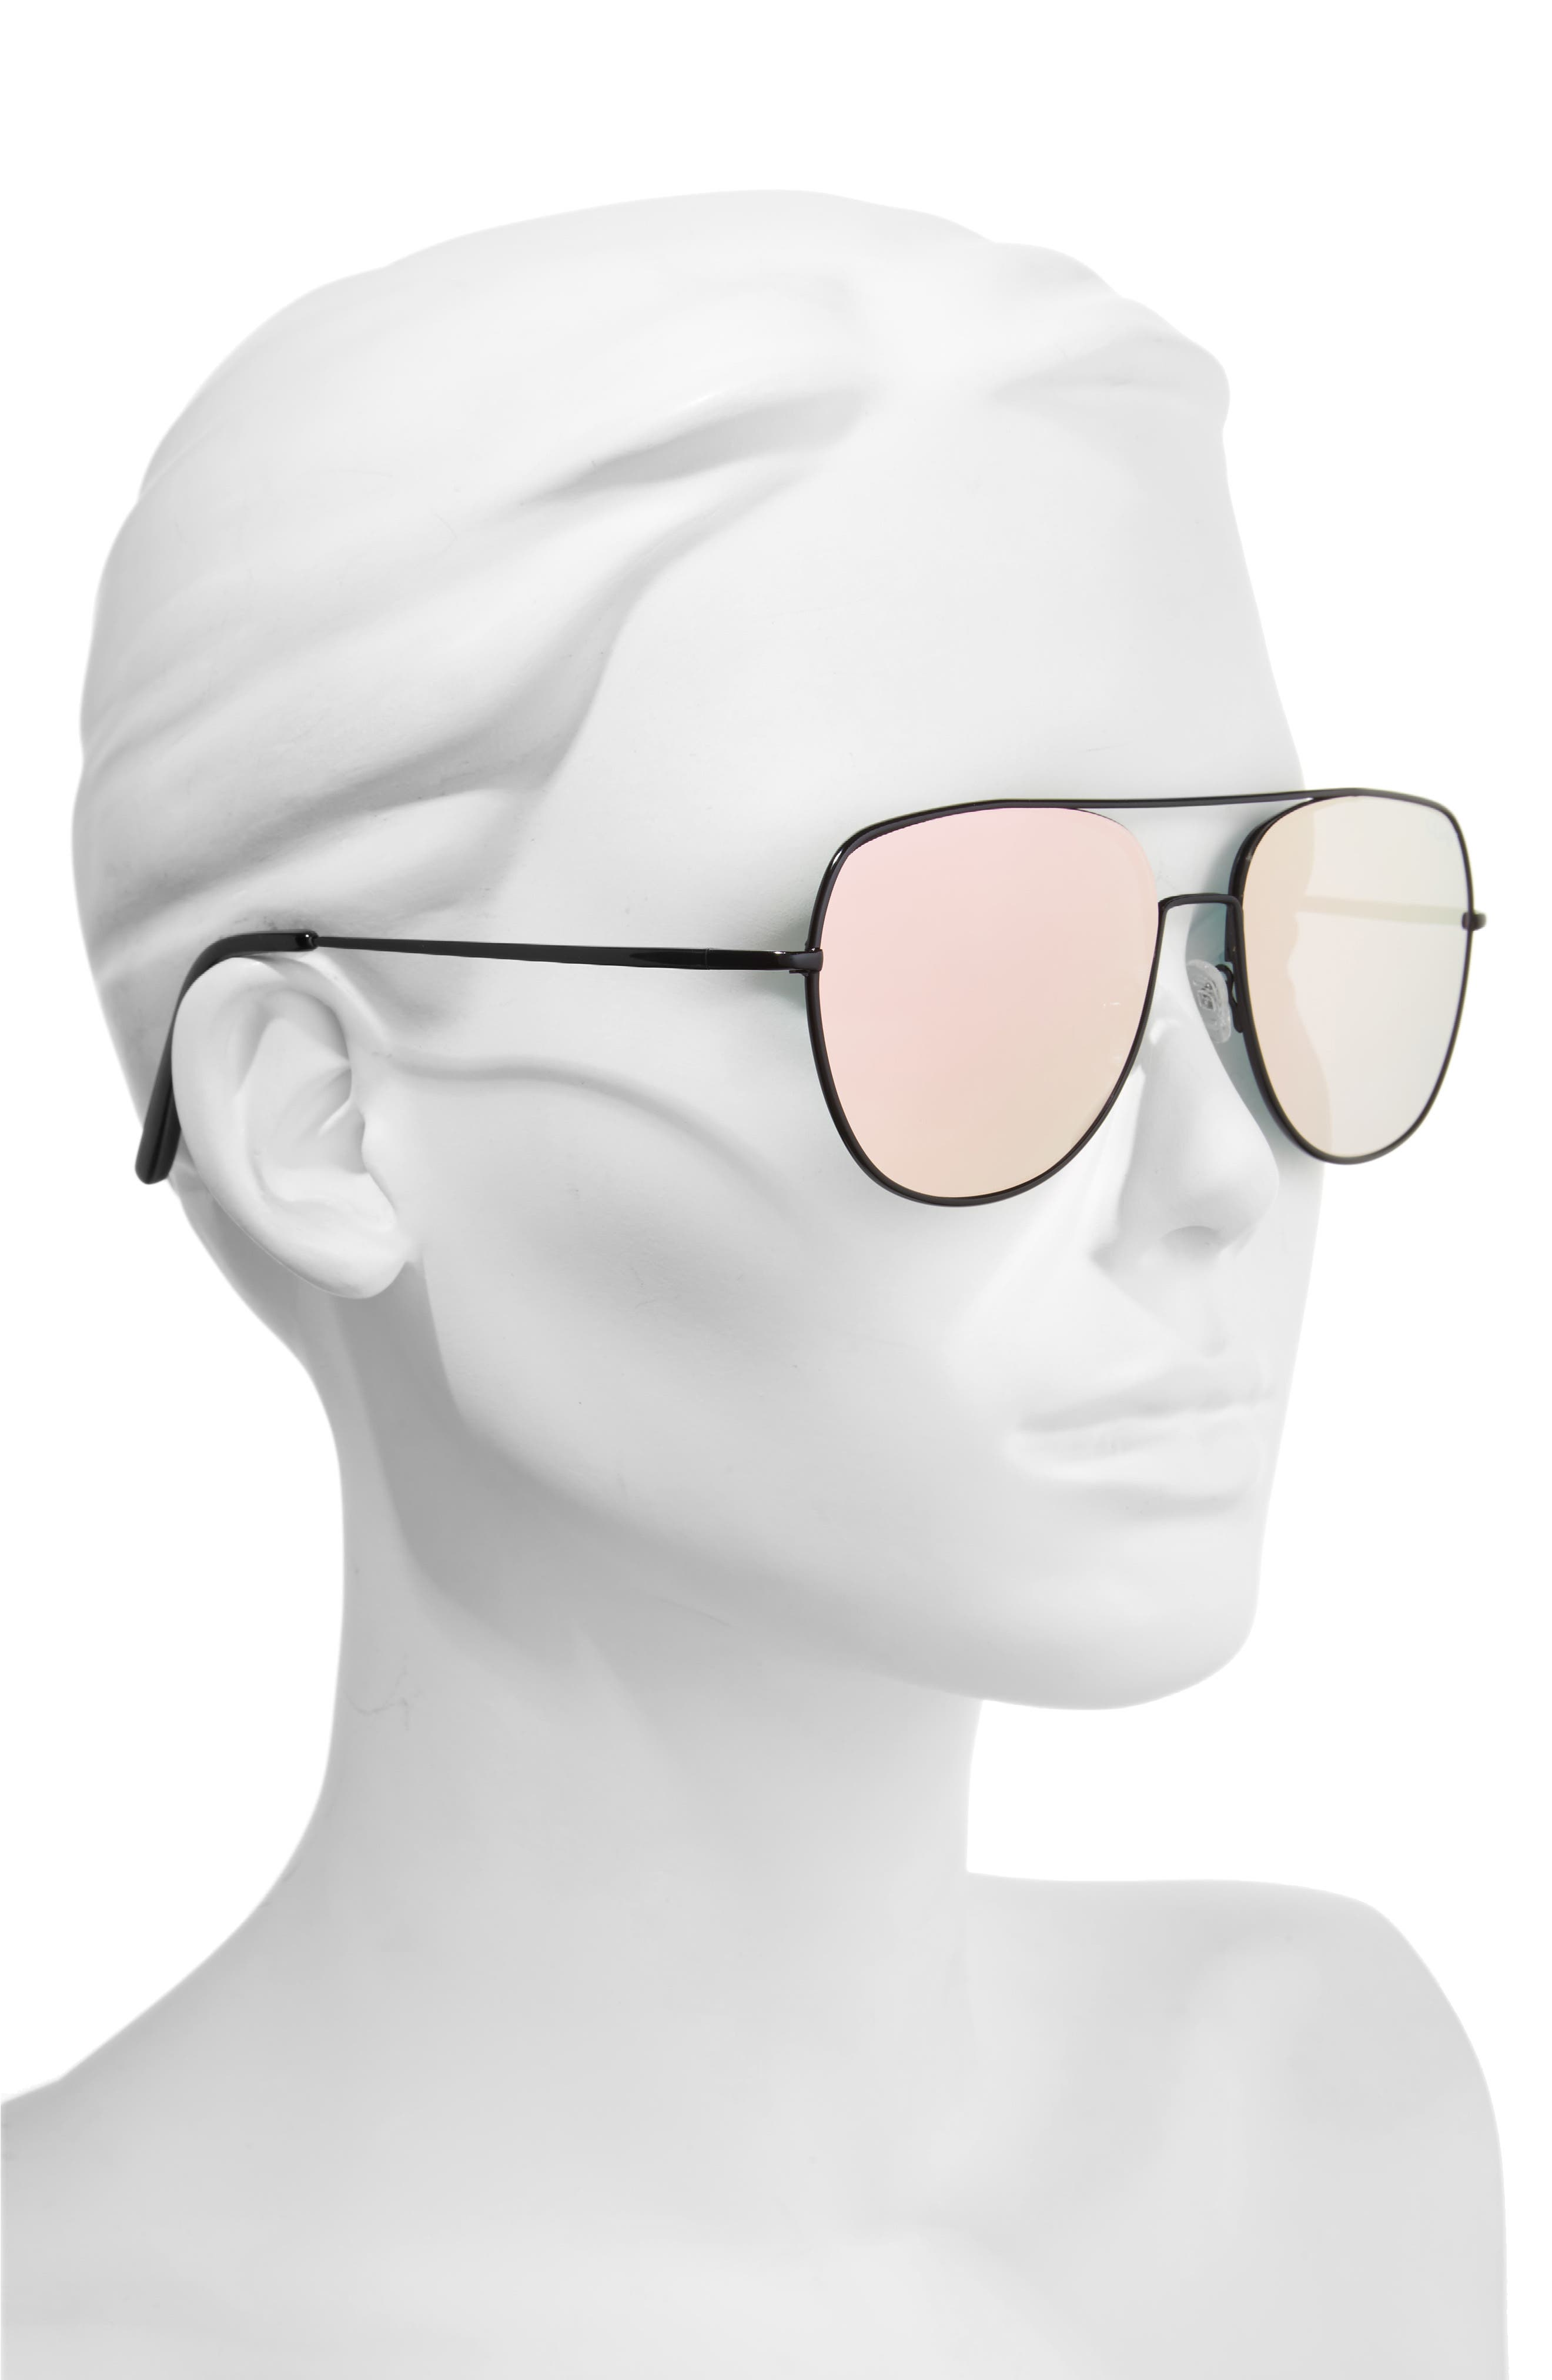 Living Large 60mm Mirrored Aviator Sunglasses,                             Alternate thumbnail 2, color,                             001